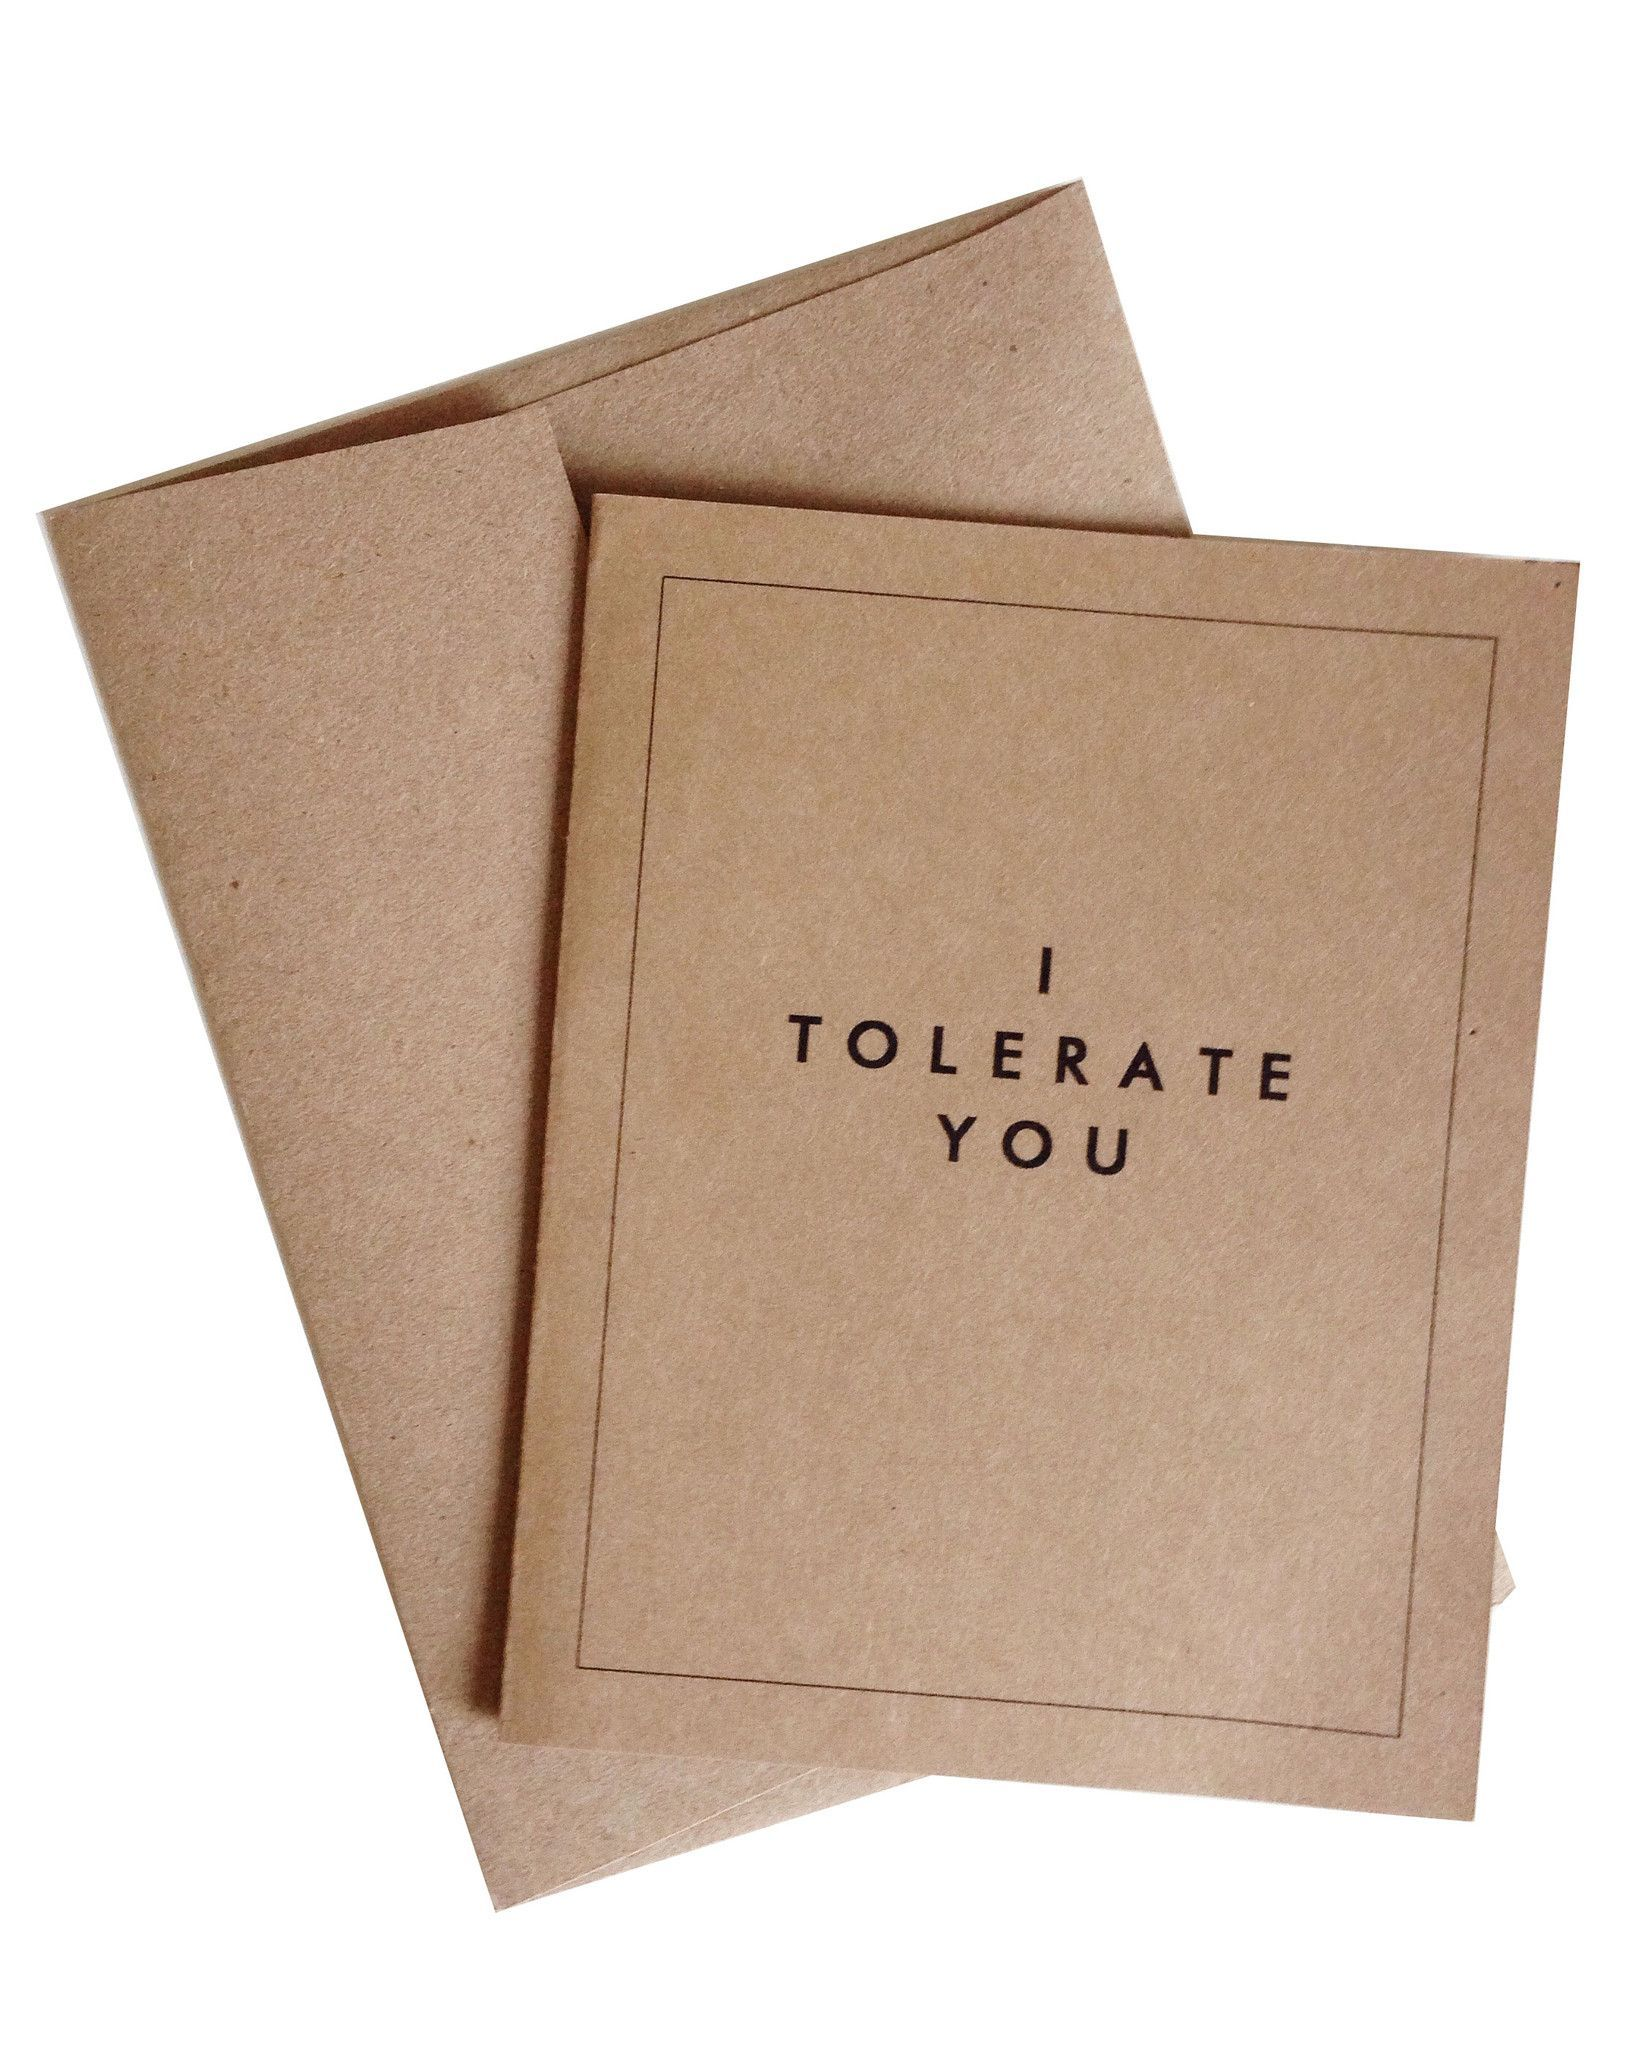 I Tolerate You Greeting Card Crafts Pinterest A2 Envelopes